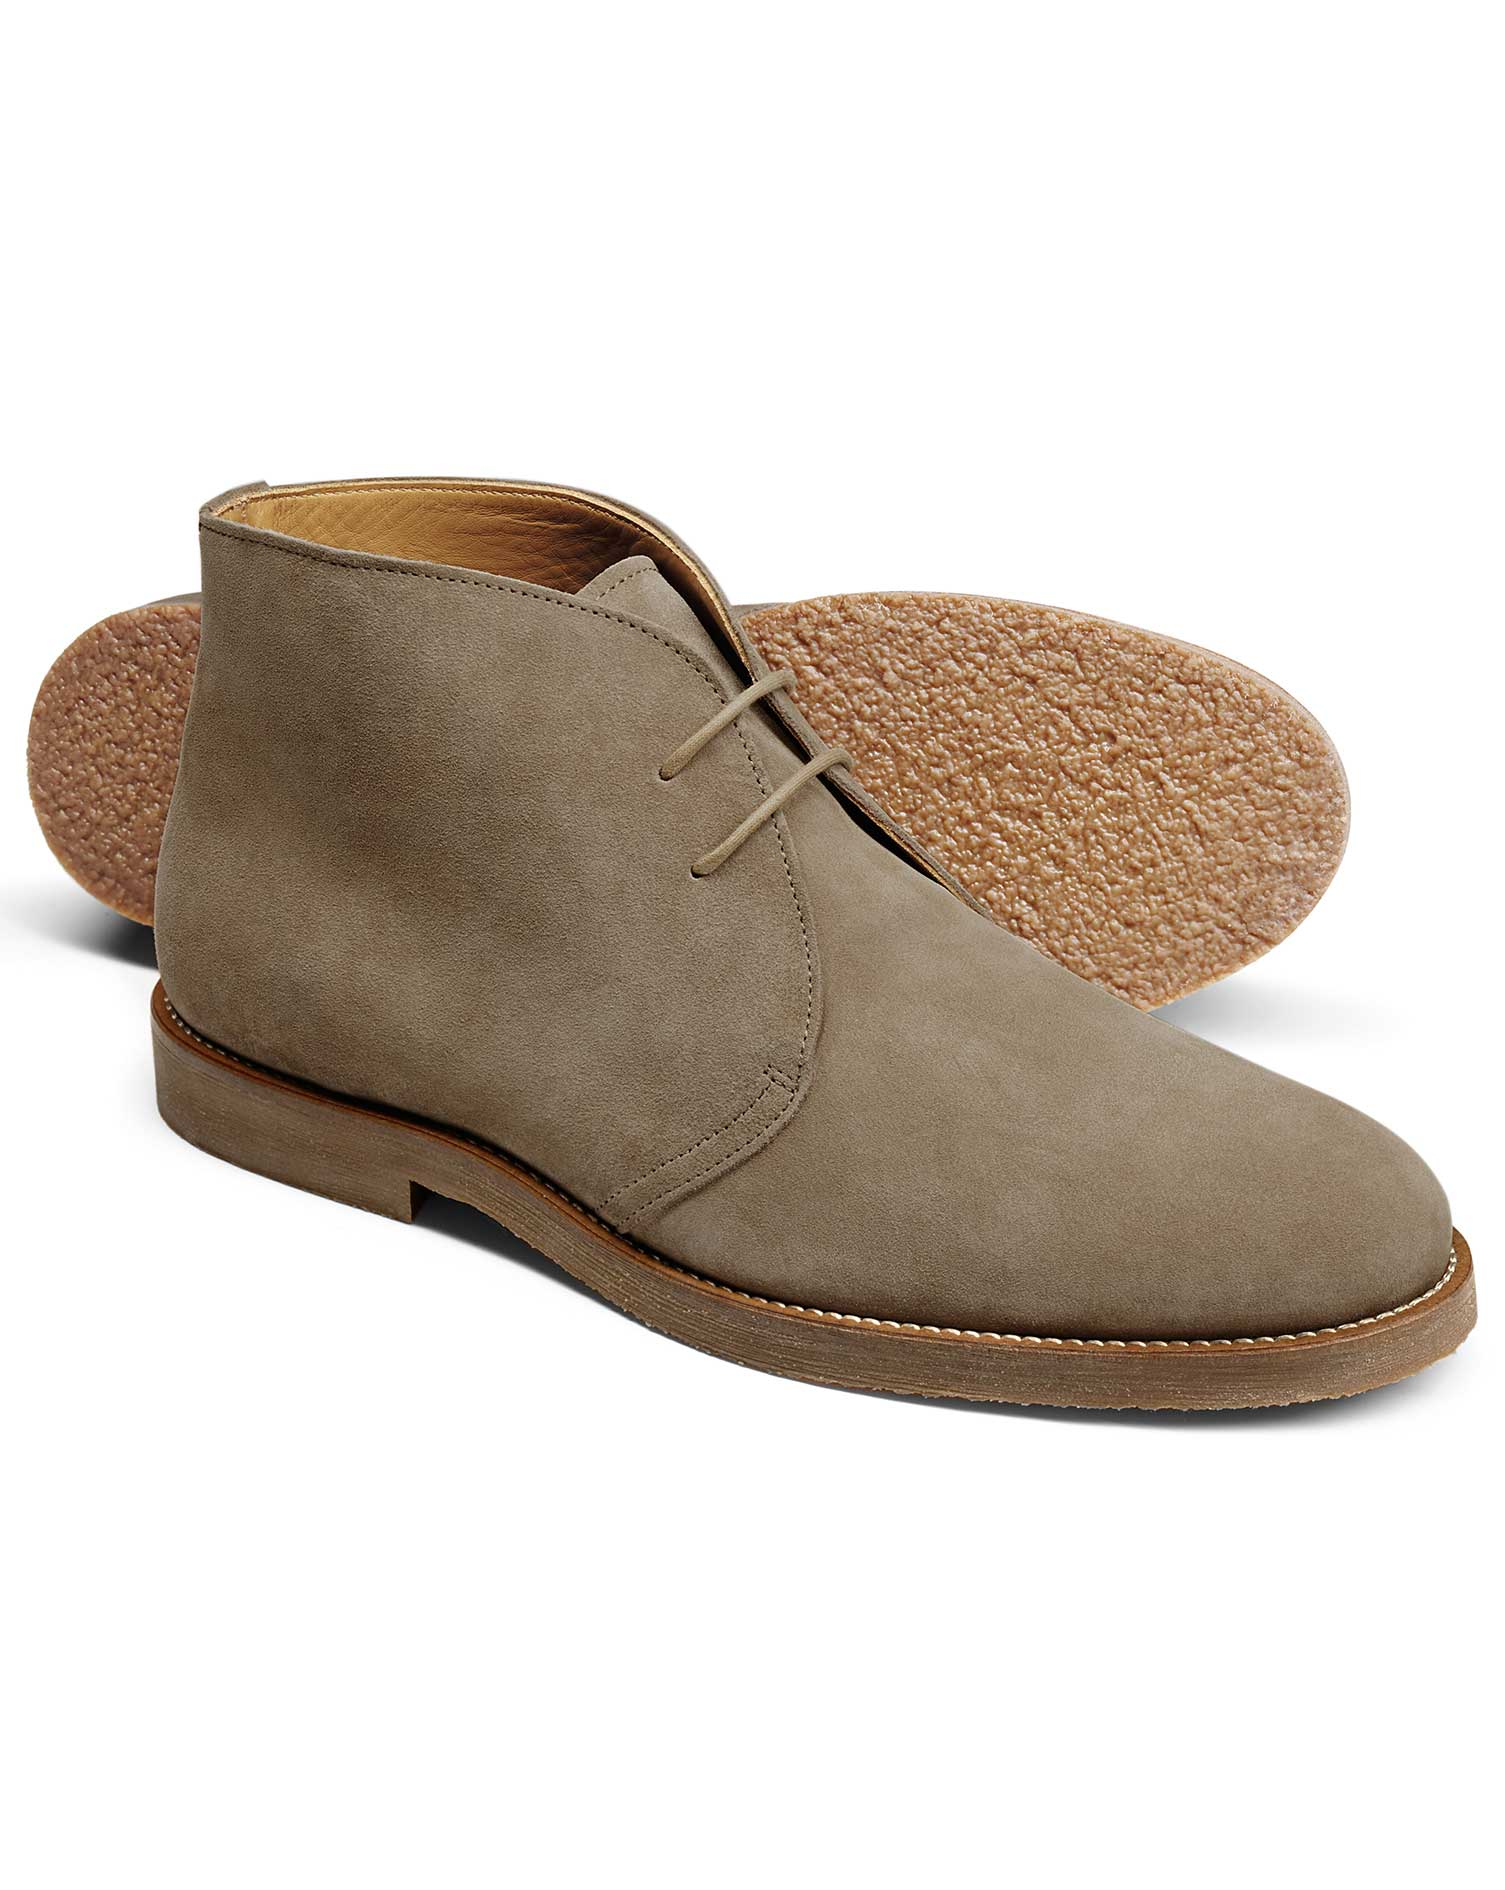 Stone Suede Desert Boot Size 13 R by Charles Tyrwhitt